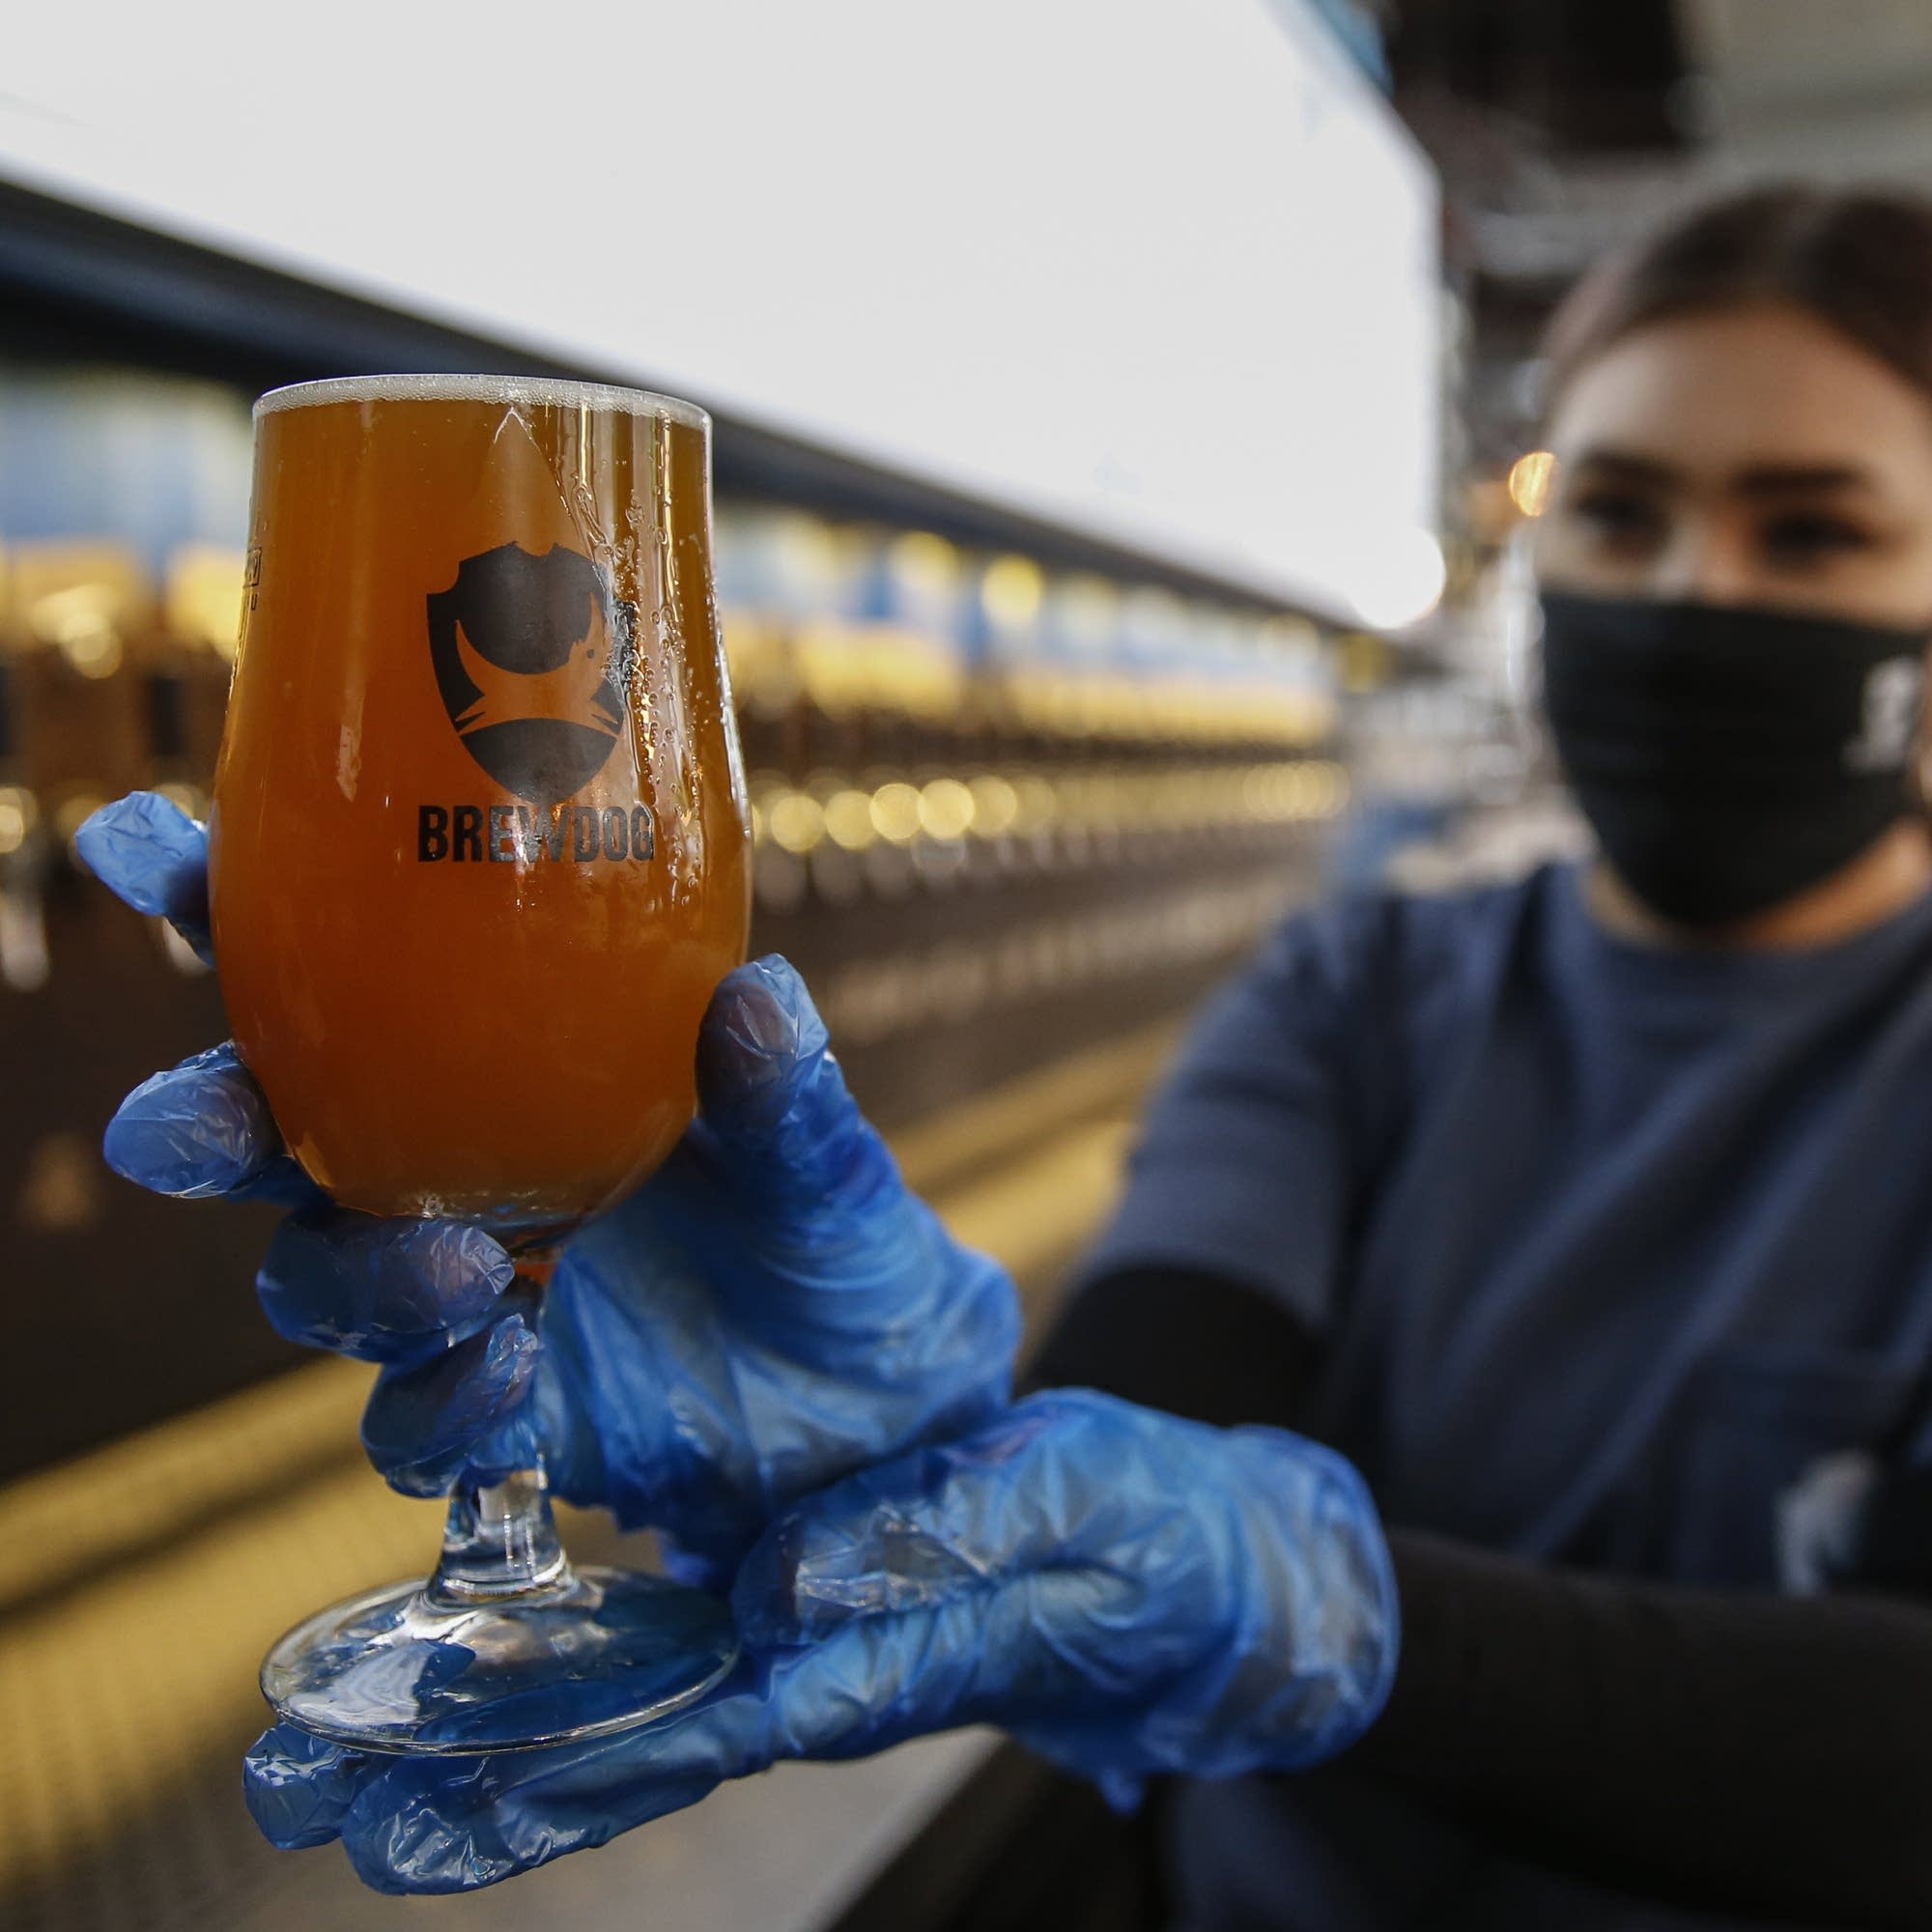 A brewery in London prepares to reopen with safety measures in place.